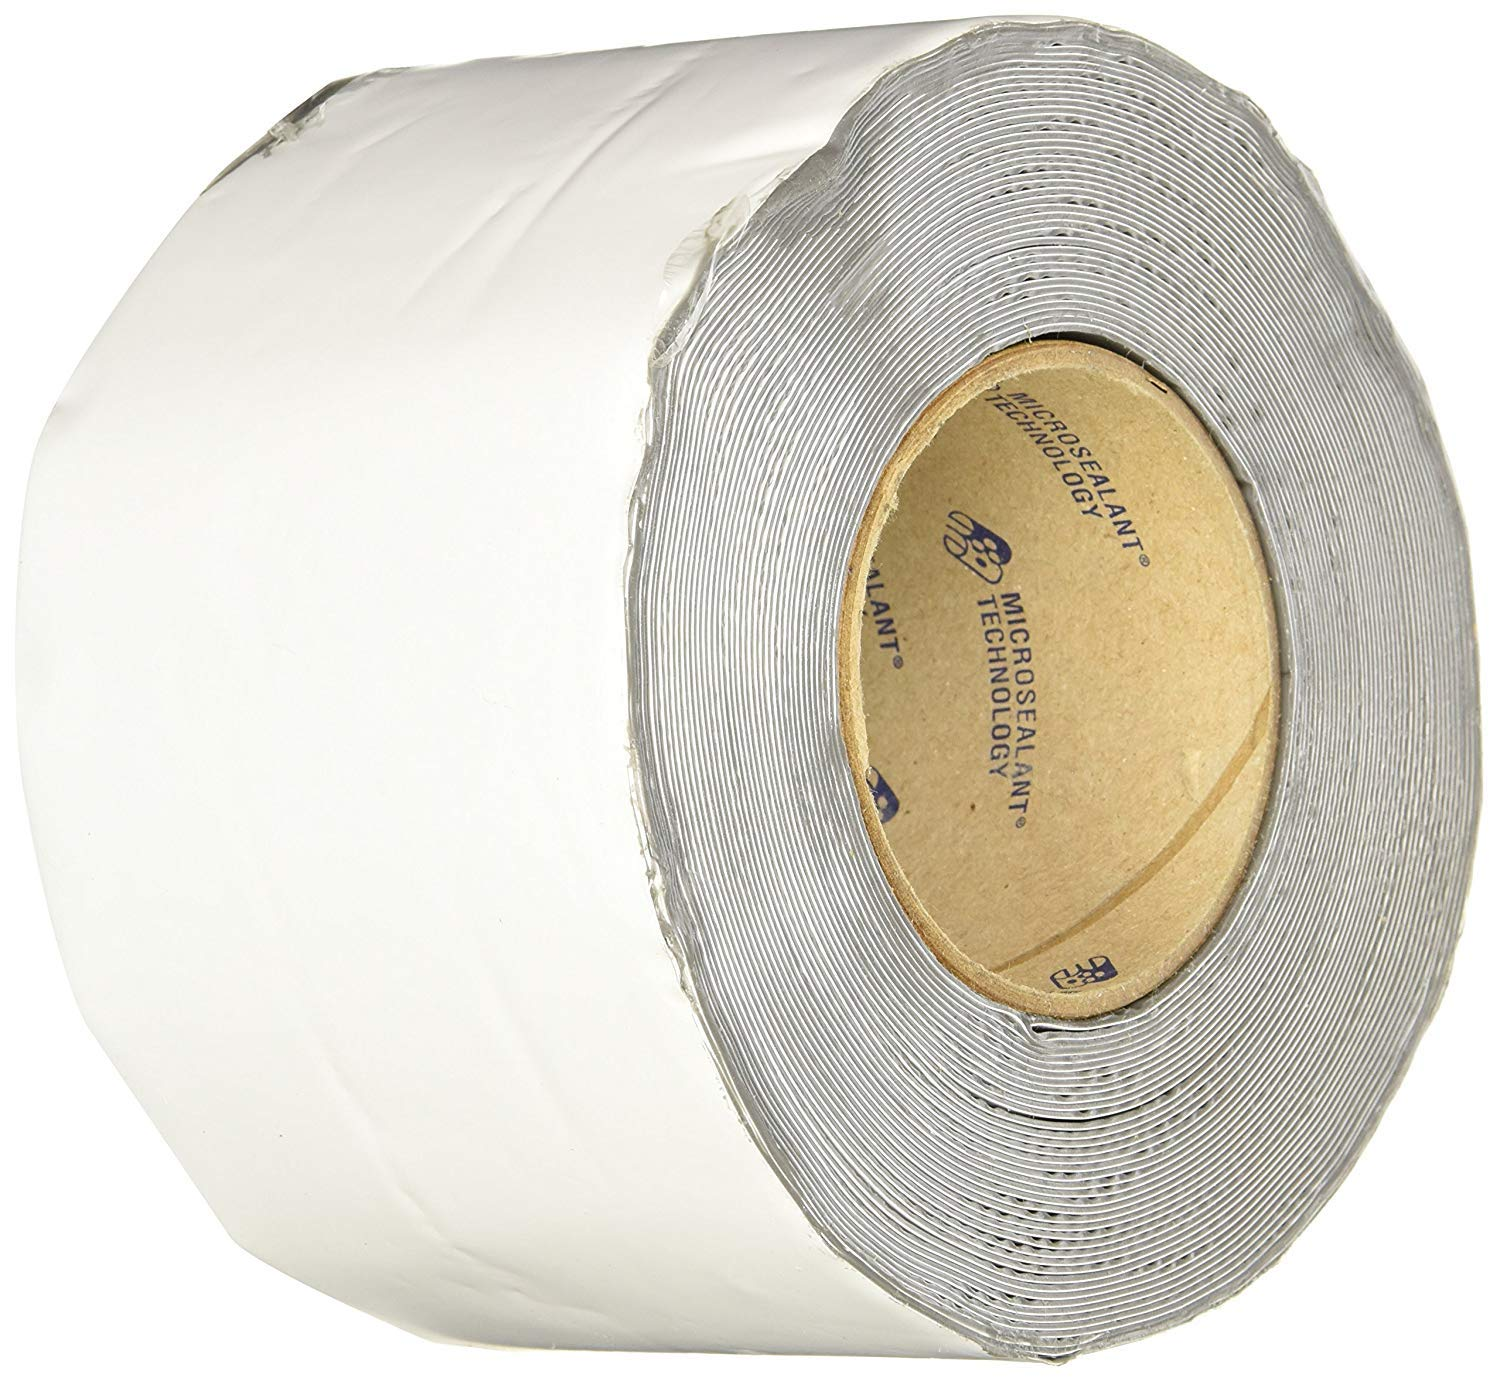 "EternaBond 3"" White Mobile Home RV Rubber Roof Repair Tape Sealant 3"" x 20' (3"" x 20 Foot)"